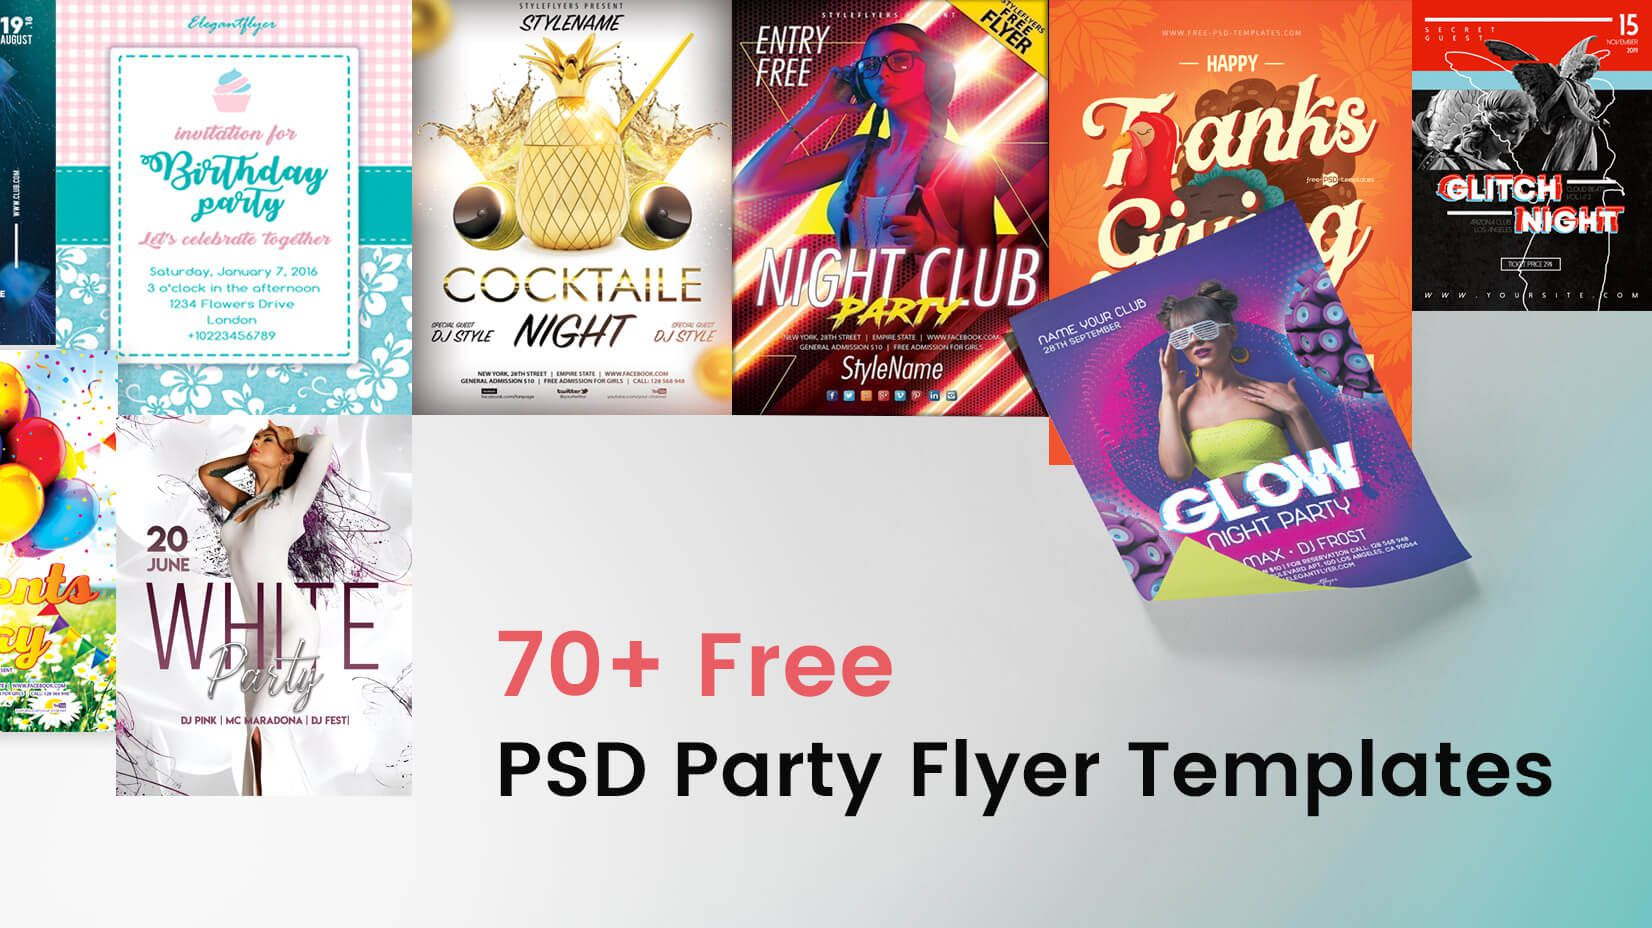 005 Awesome Free Pool Party Flyer Template Psd High Definition  PhotoshopFull